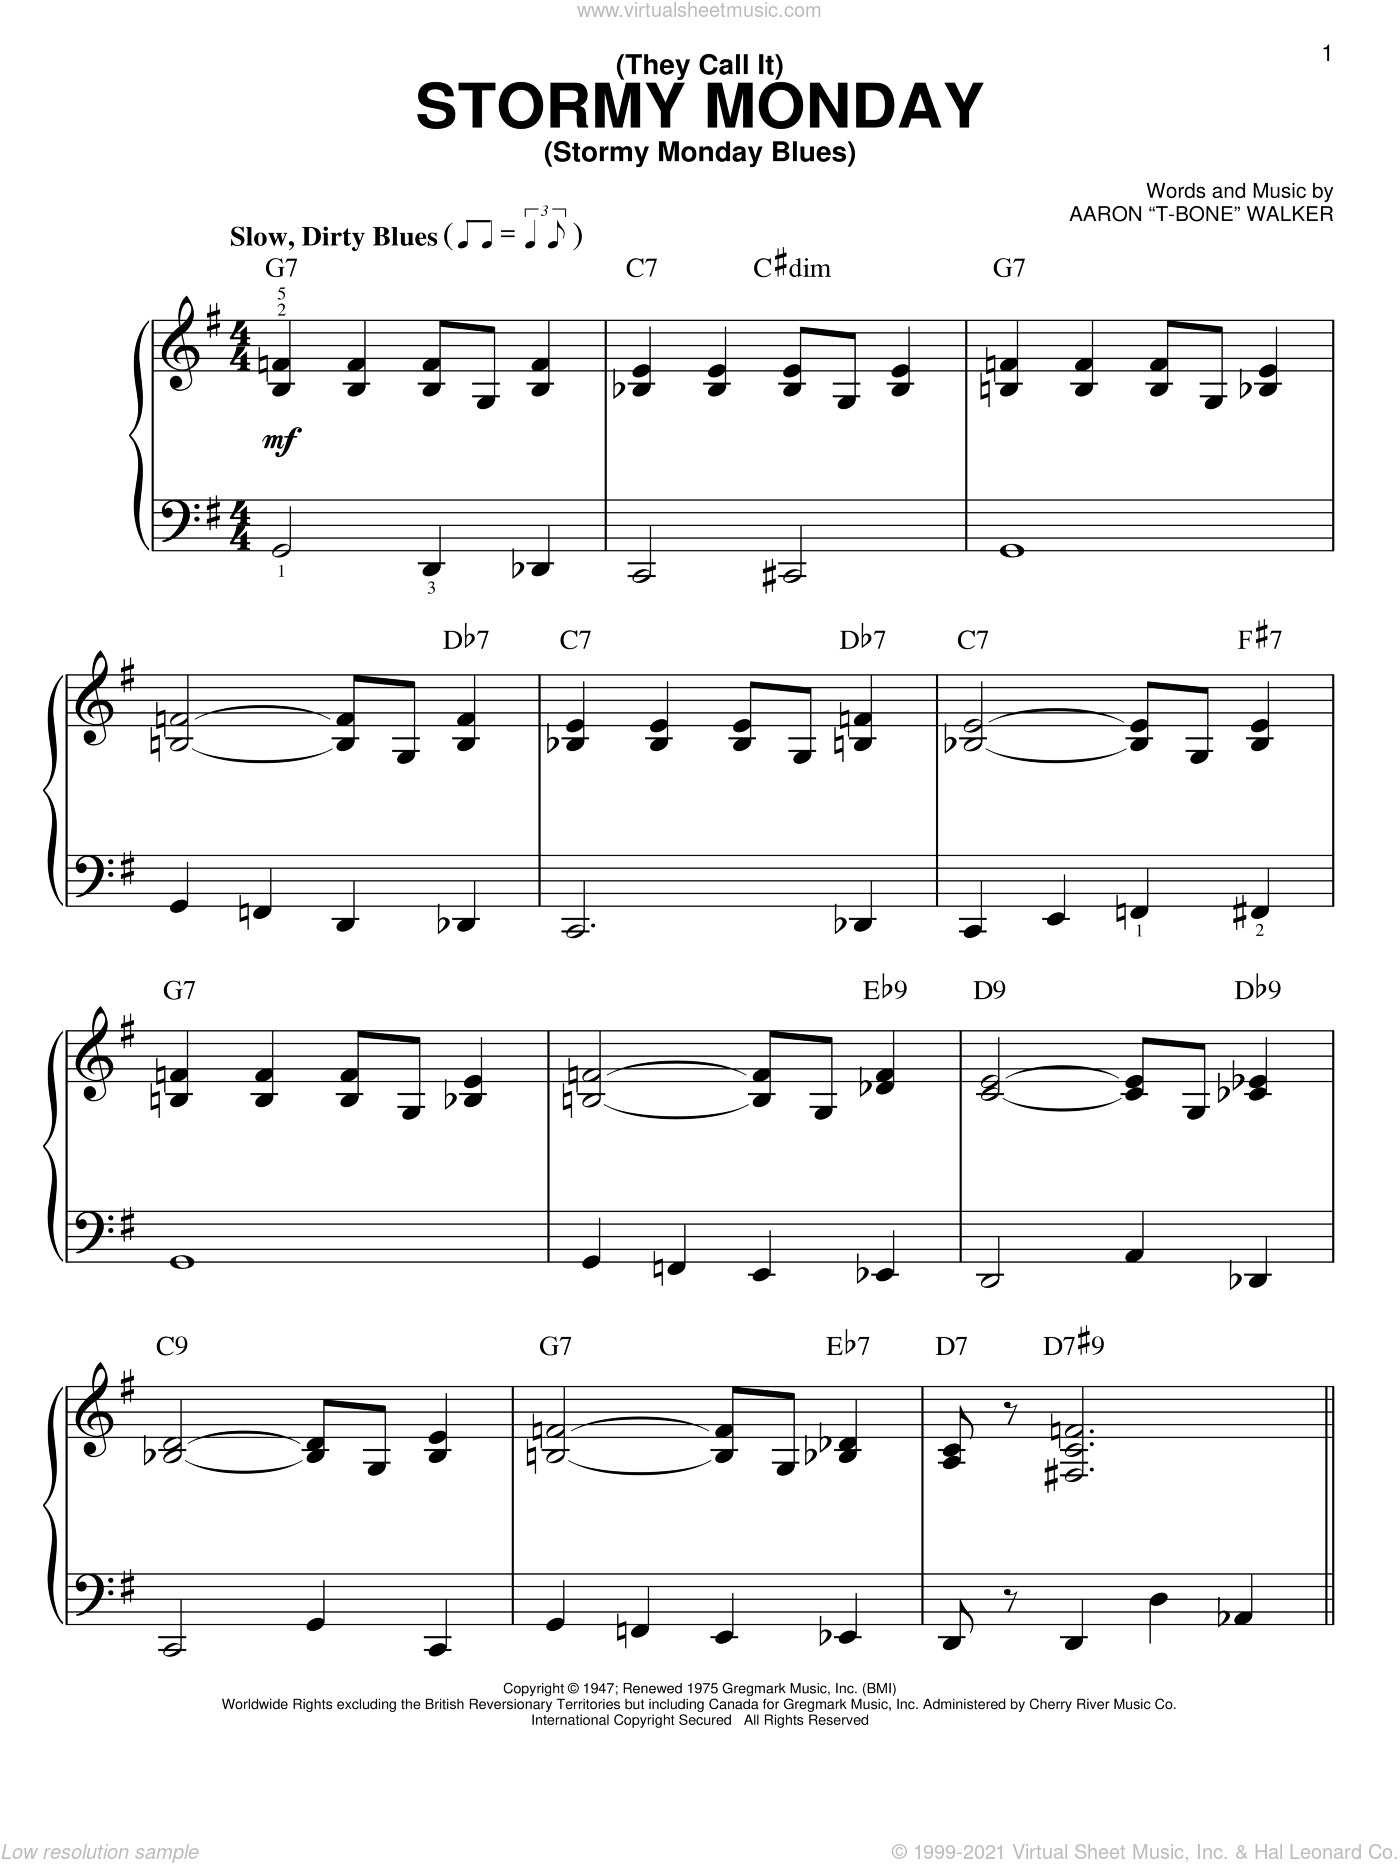 (They Call It) Stormy Monday (Stormy Monday Blues) sheet music for piano solo by Aaron